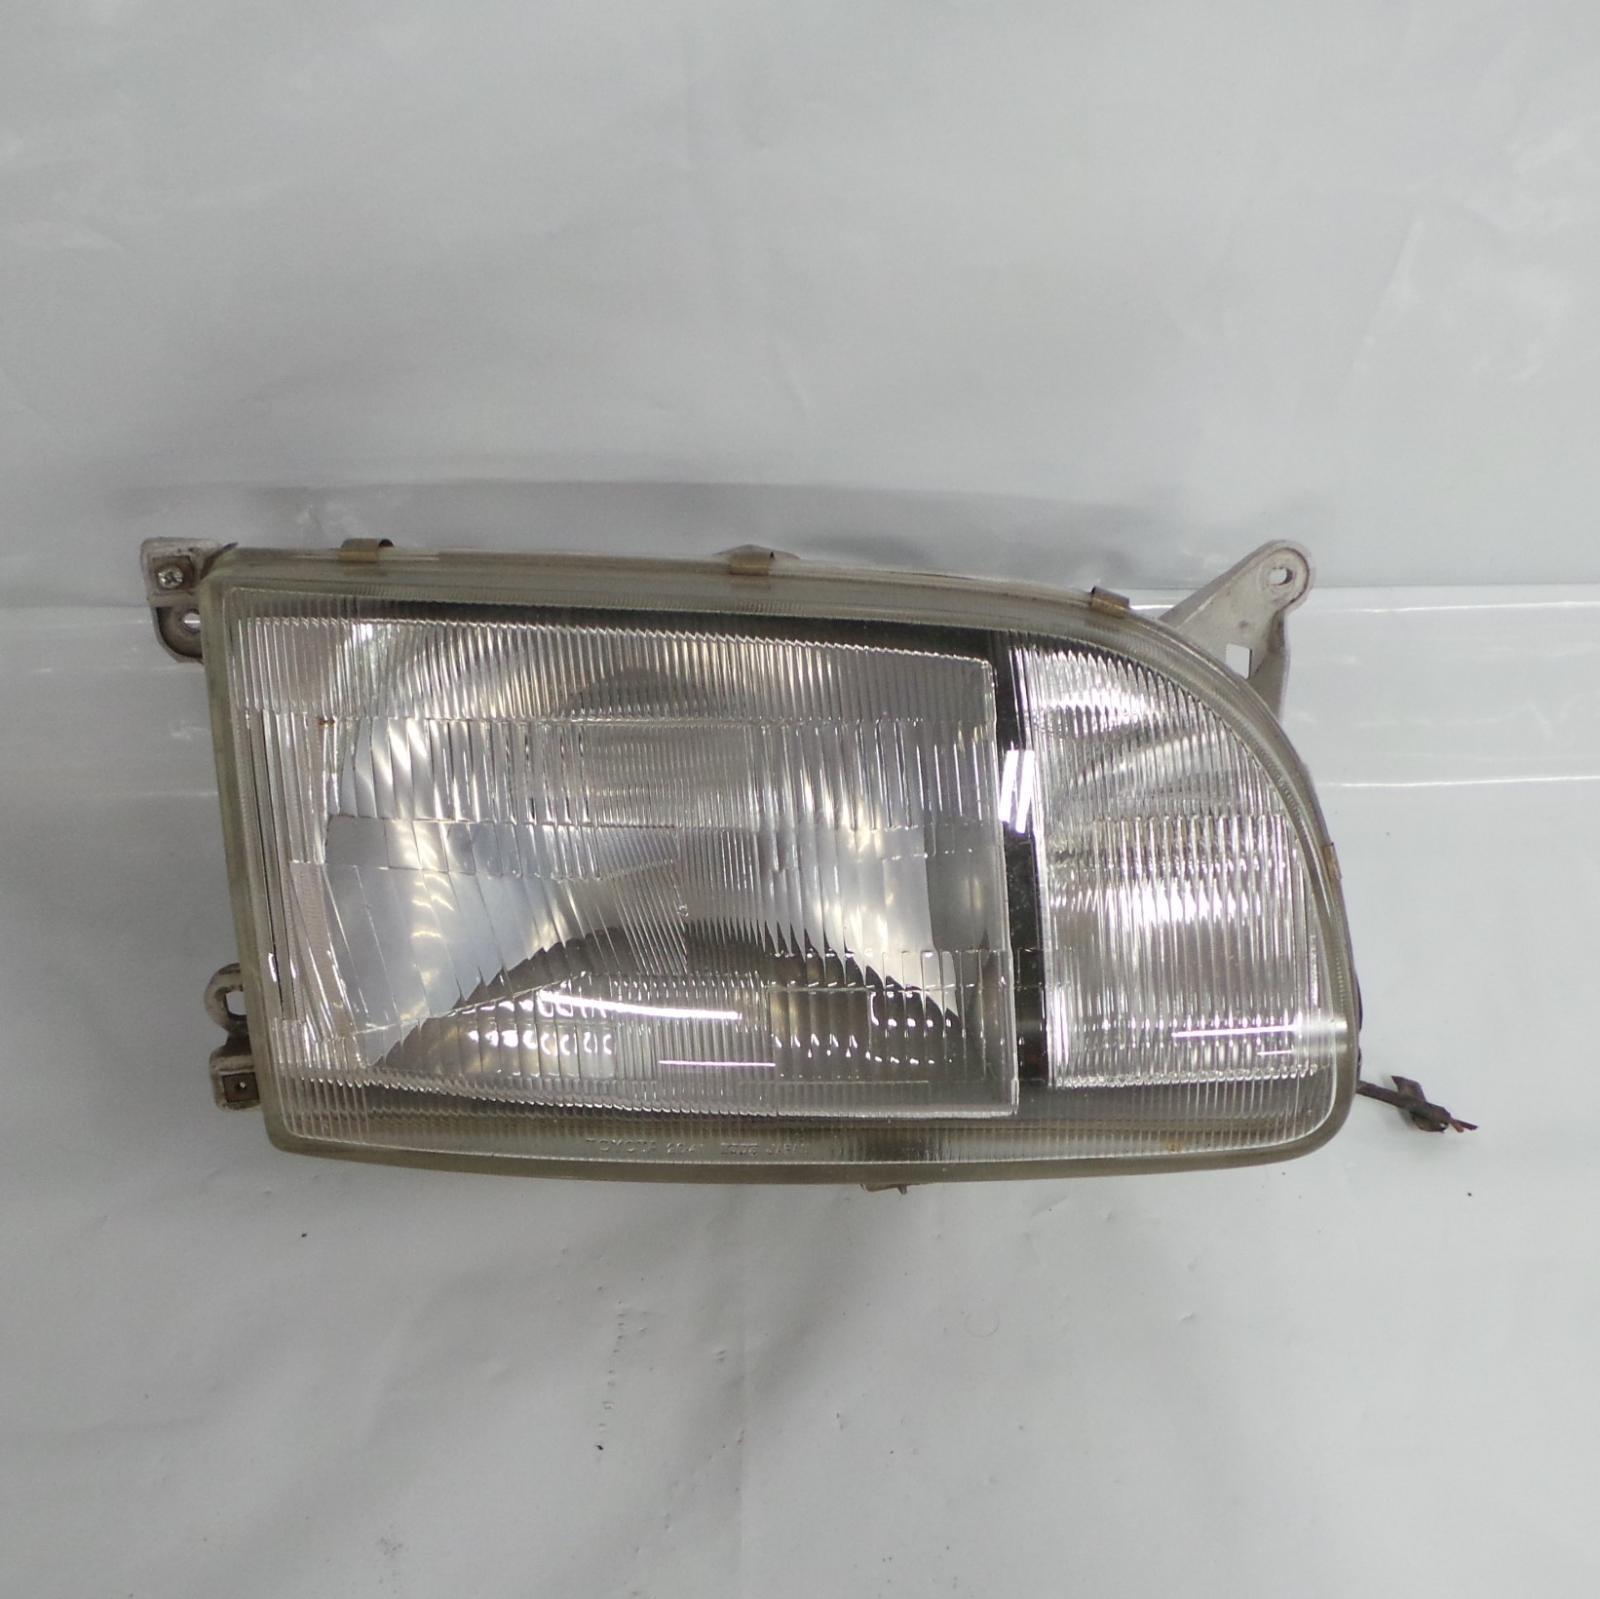 TOYOTA HIACE, Right Headlamp, SUPER CUSTOM, JAP TYPE, LENS# 26-41, 93-96 (NZ ONLY)